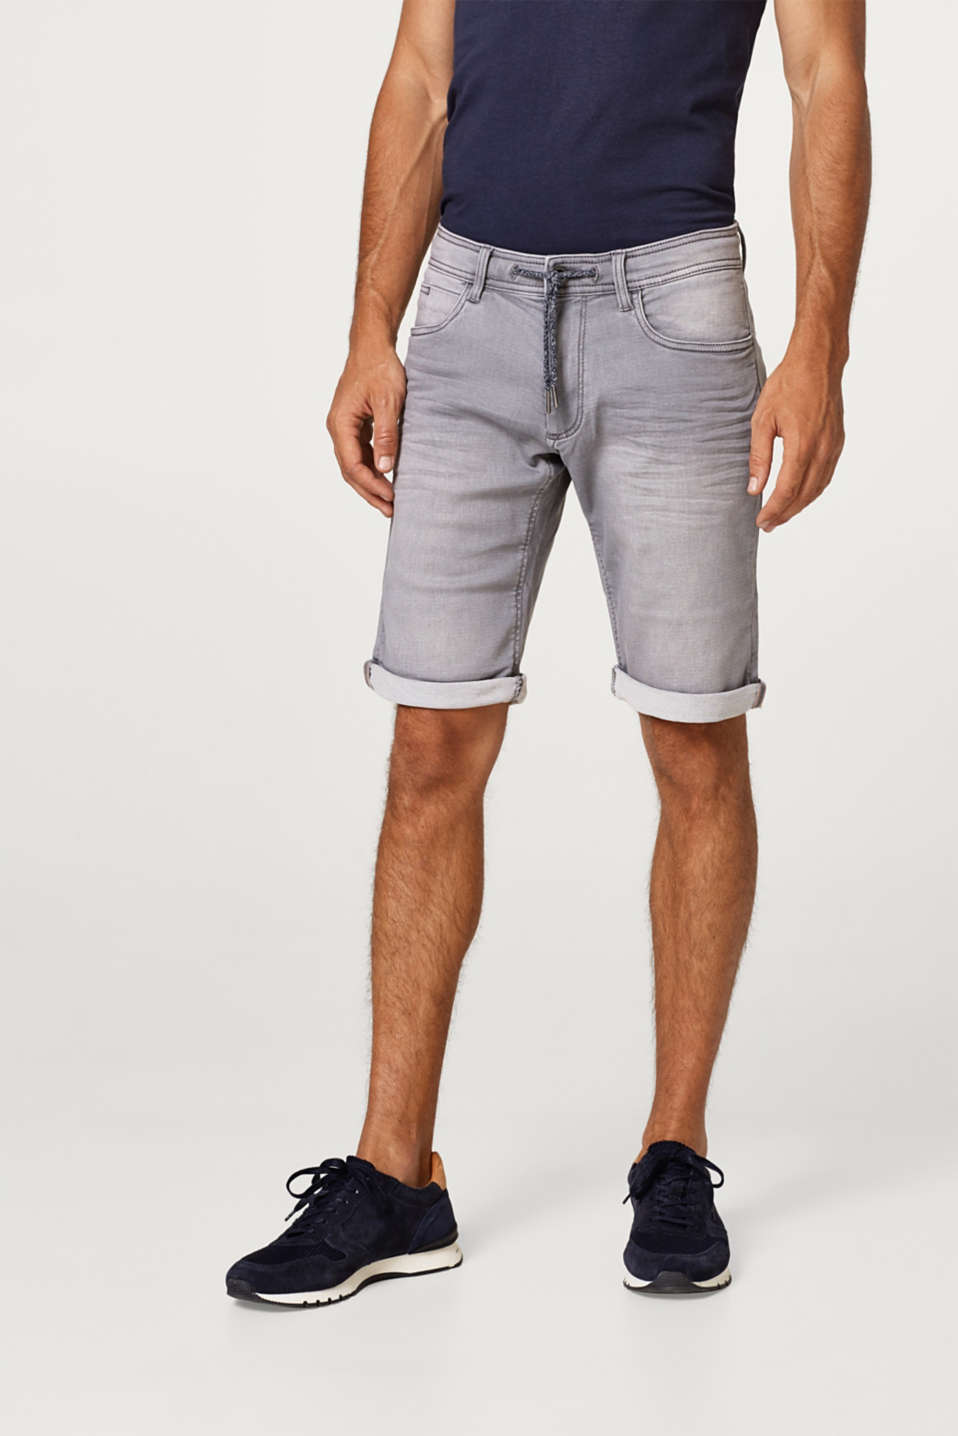 edc - Super stretch denim shorts with a drawstring waist